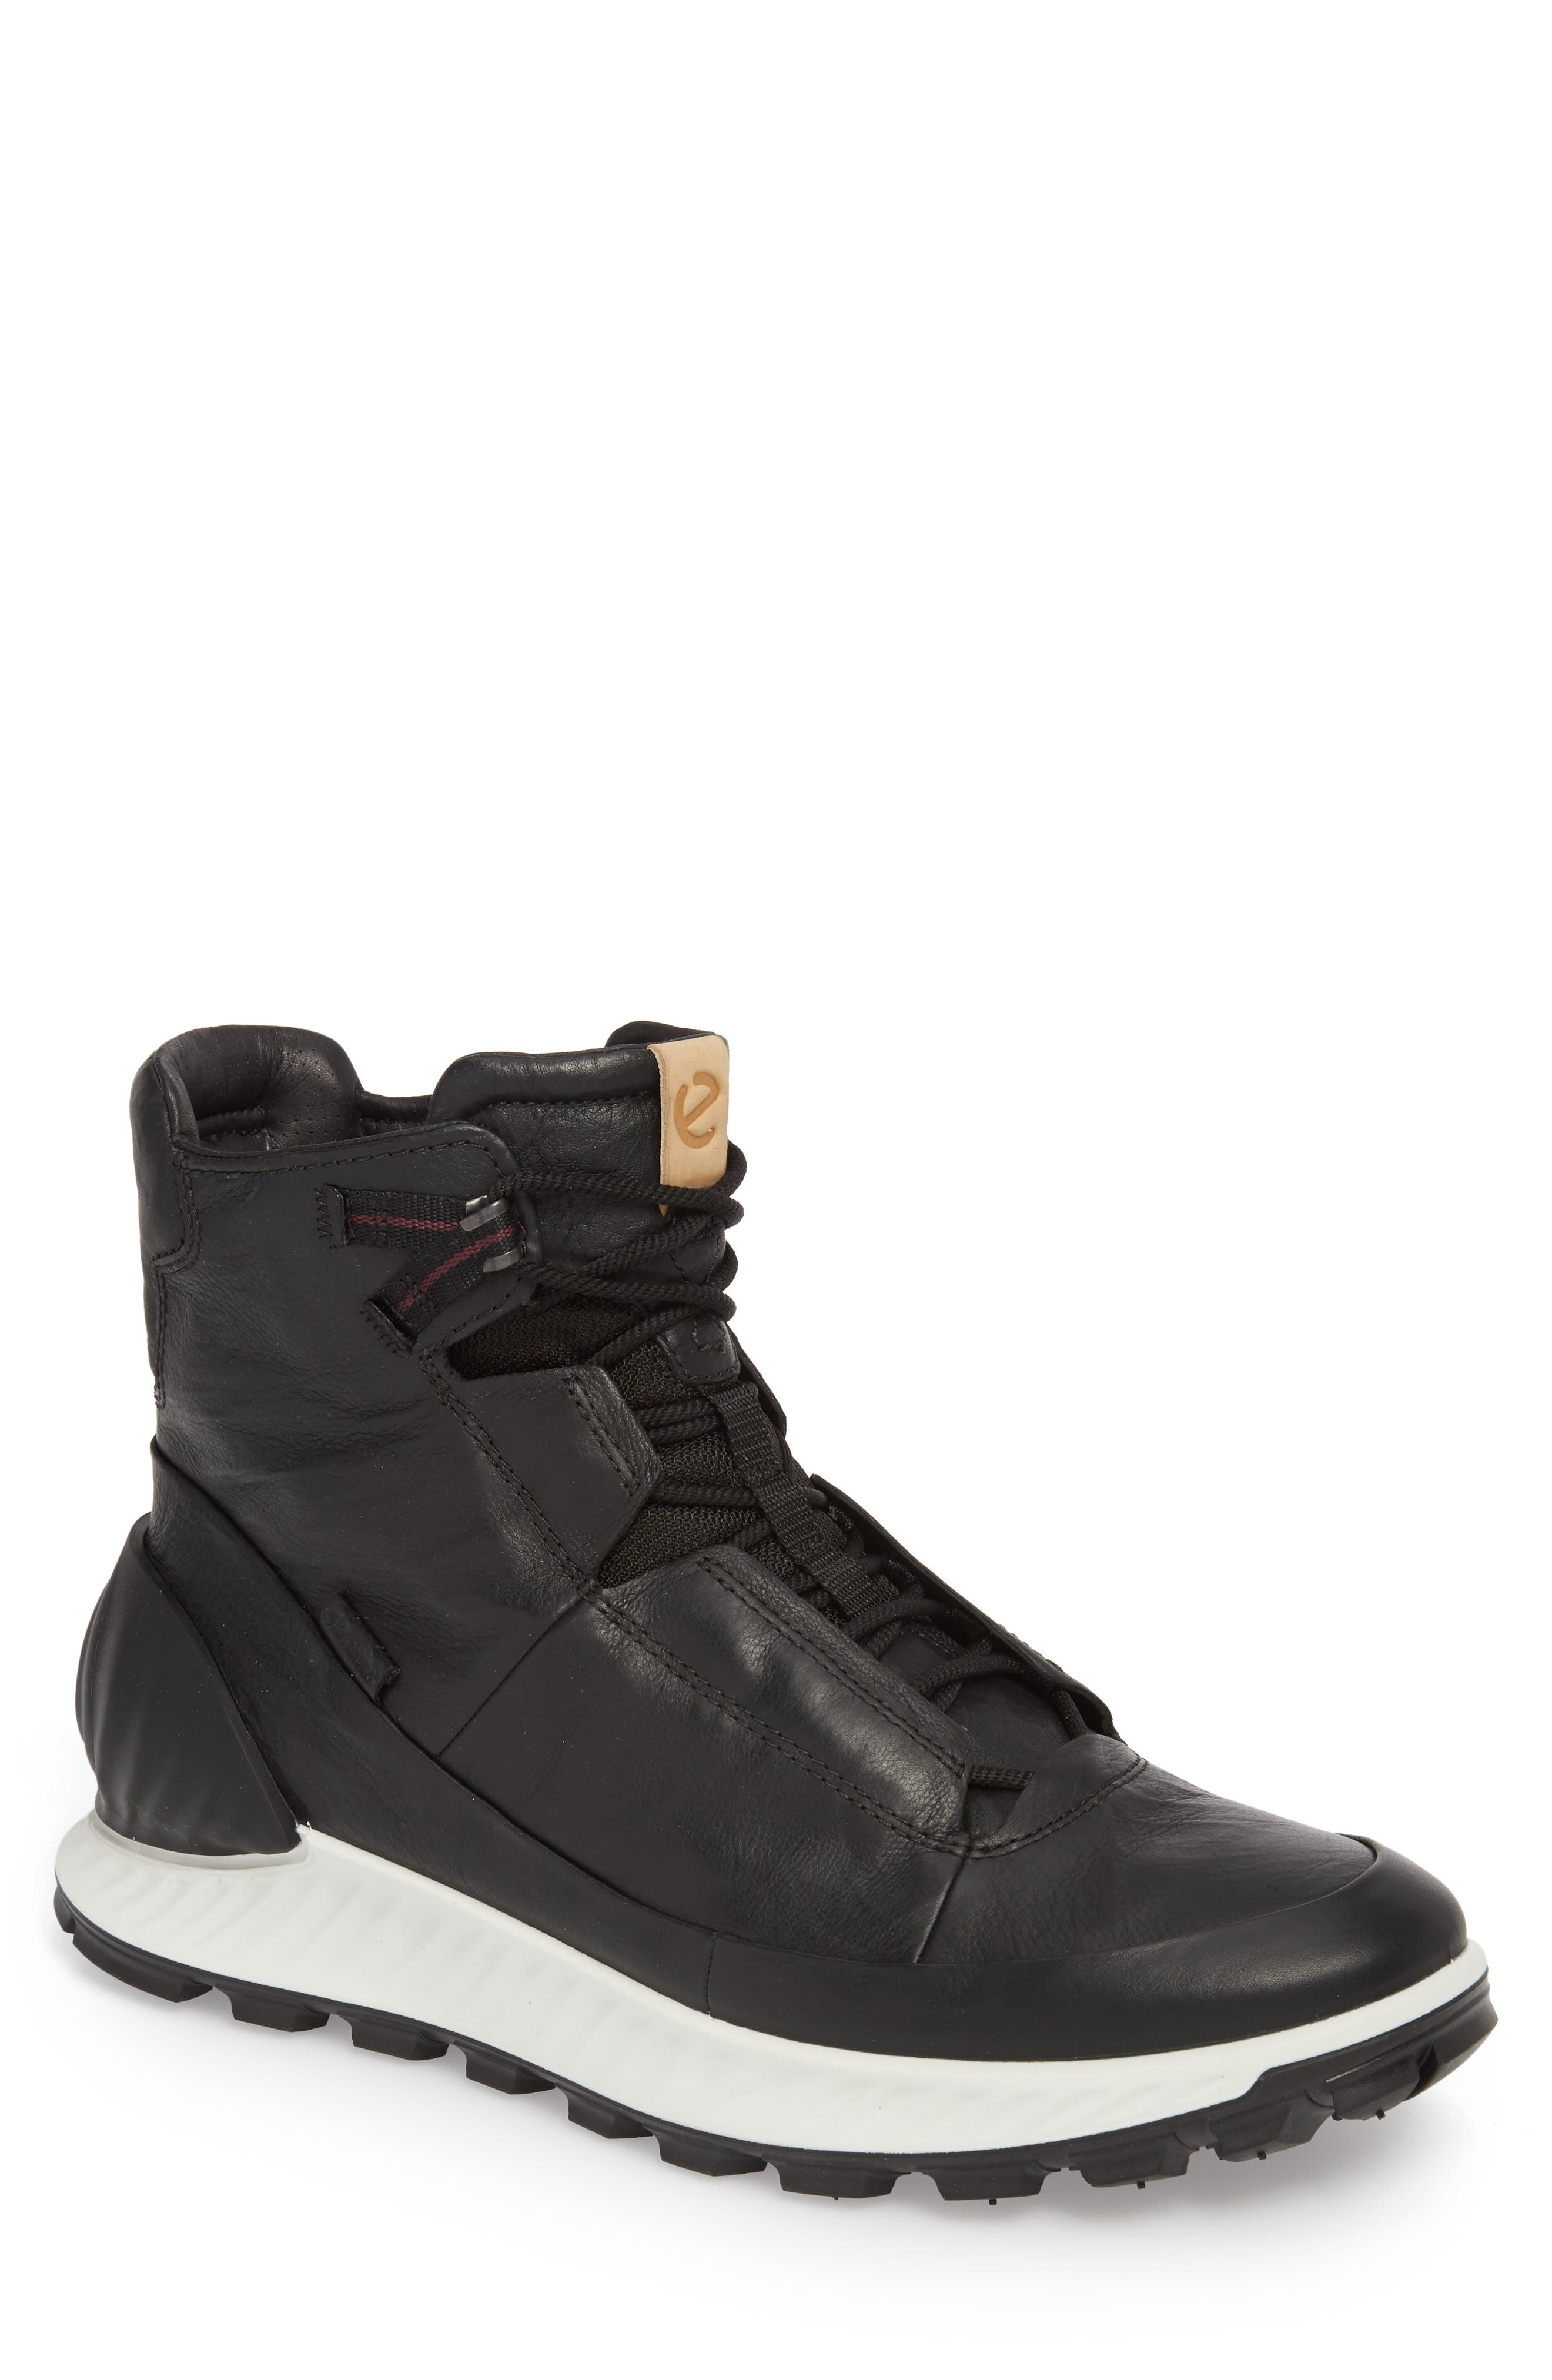 Limited Edition Exostrike Dyneema Sneaker Boot,                         Main,                         color, BLACK LEATHER